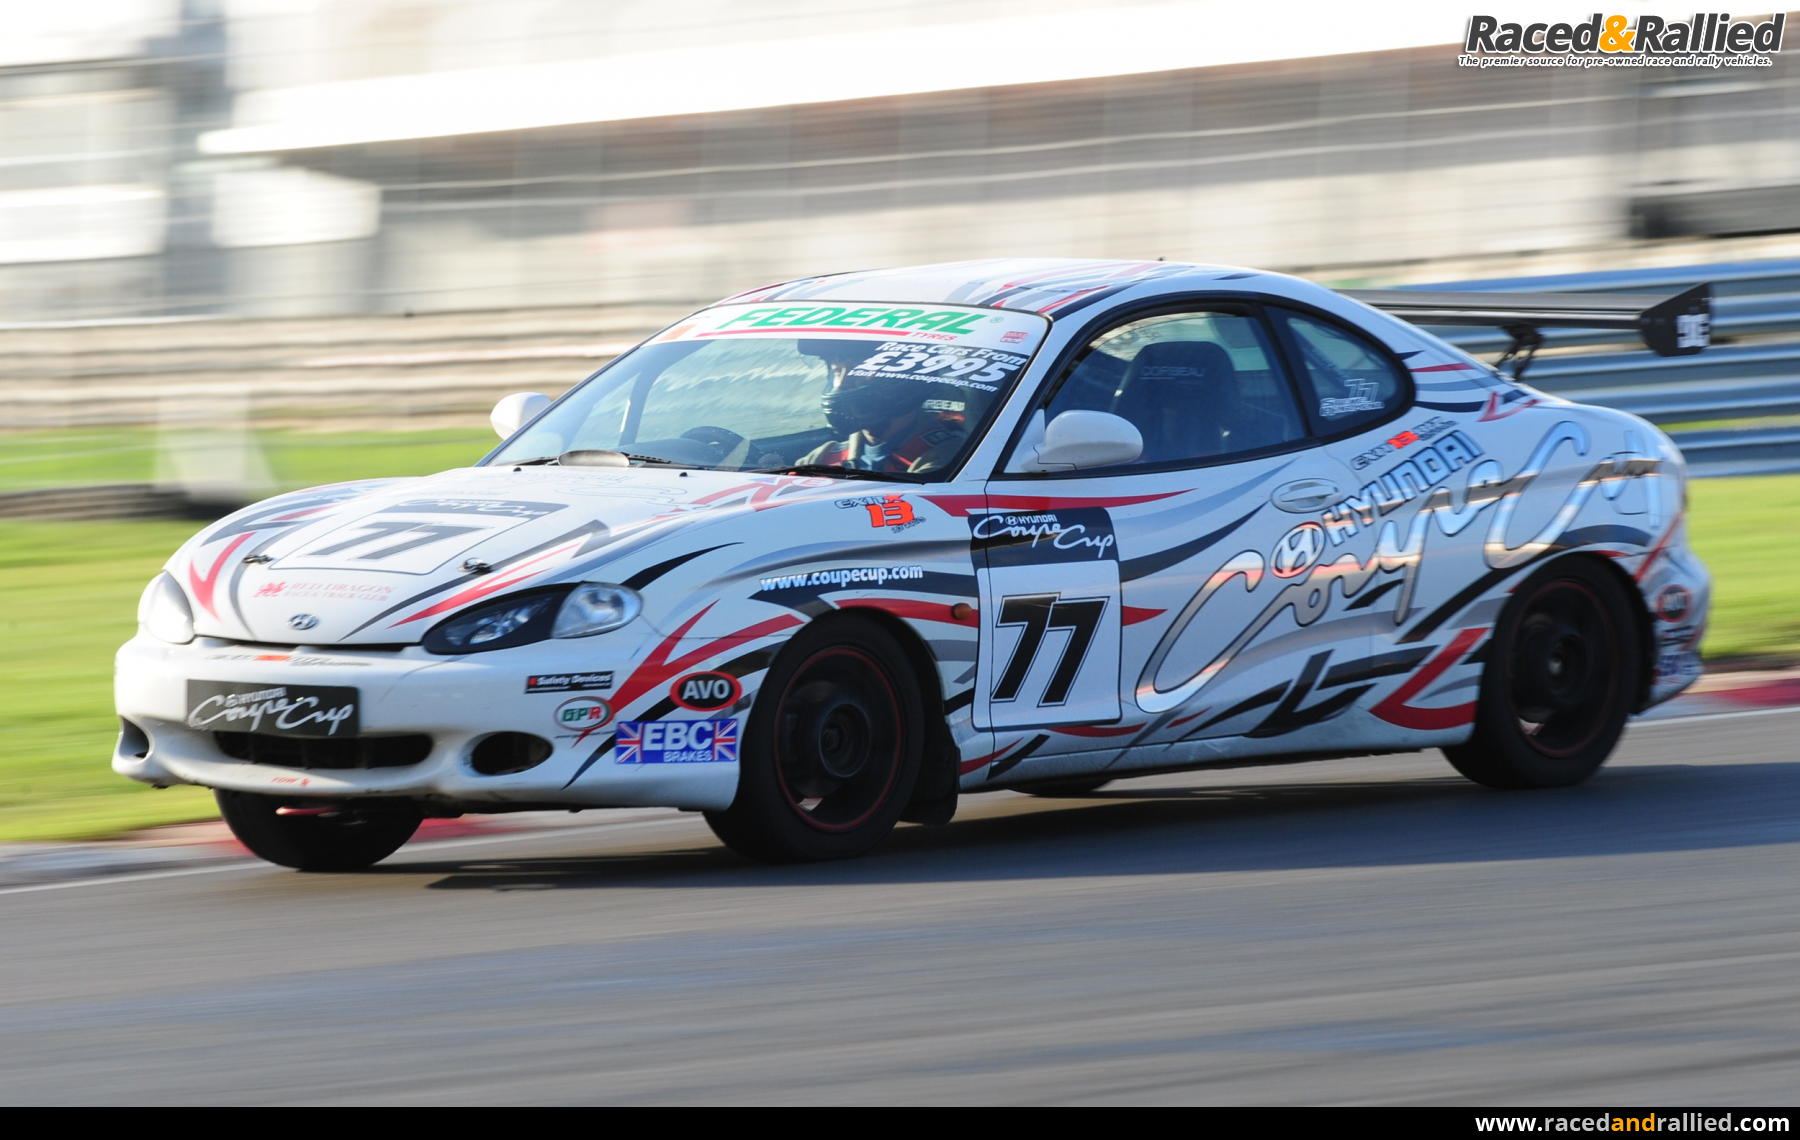 Hyundai Coupe Cup Race Cars Race Cars For Sale At Raced